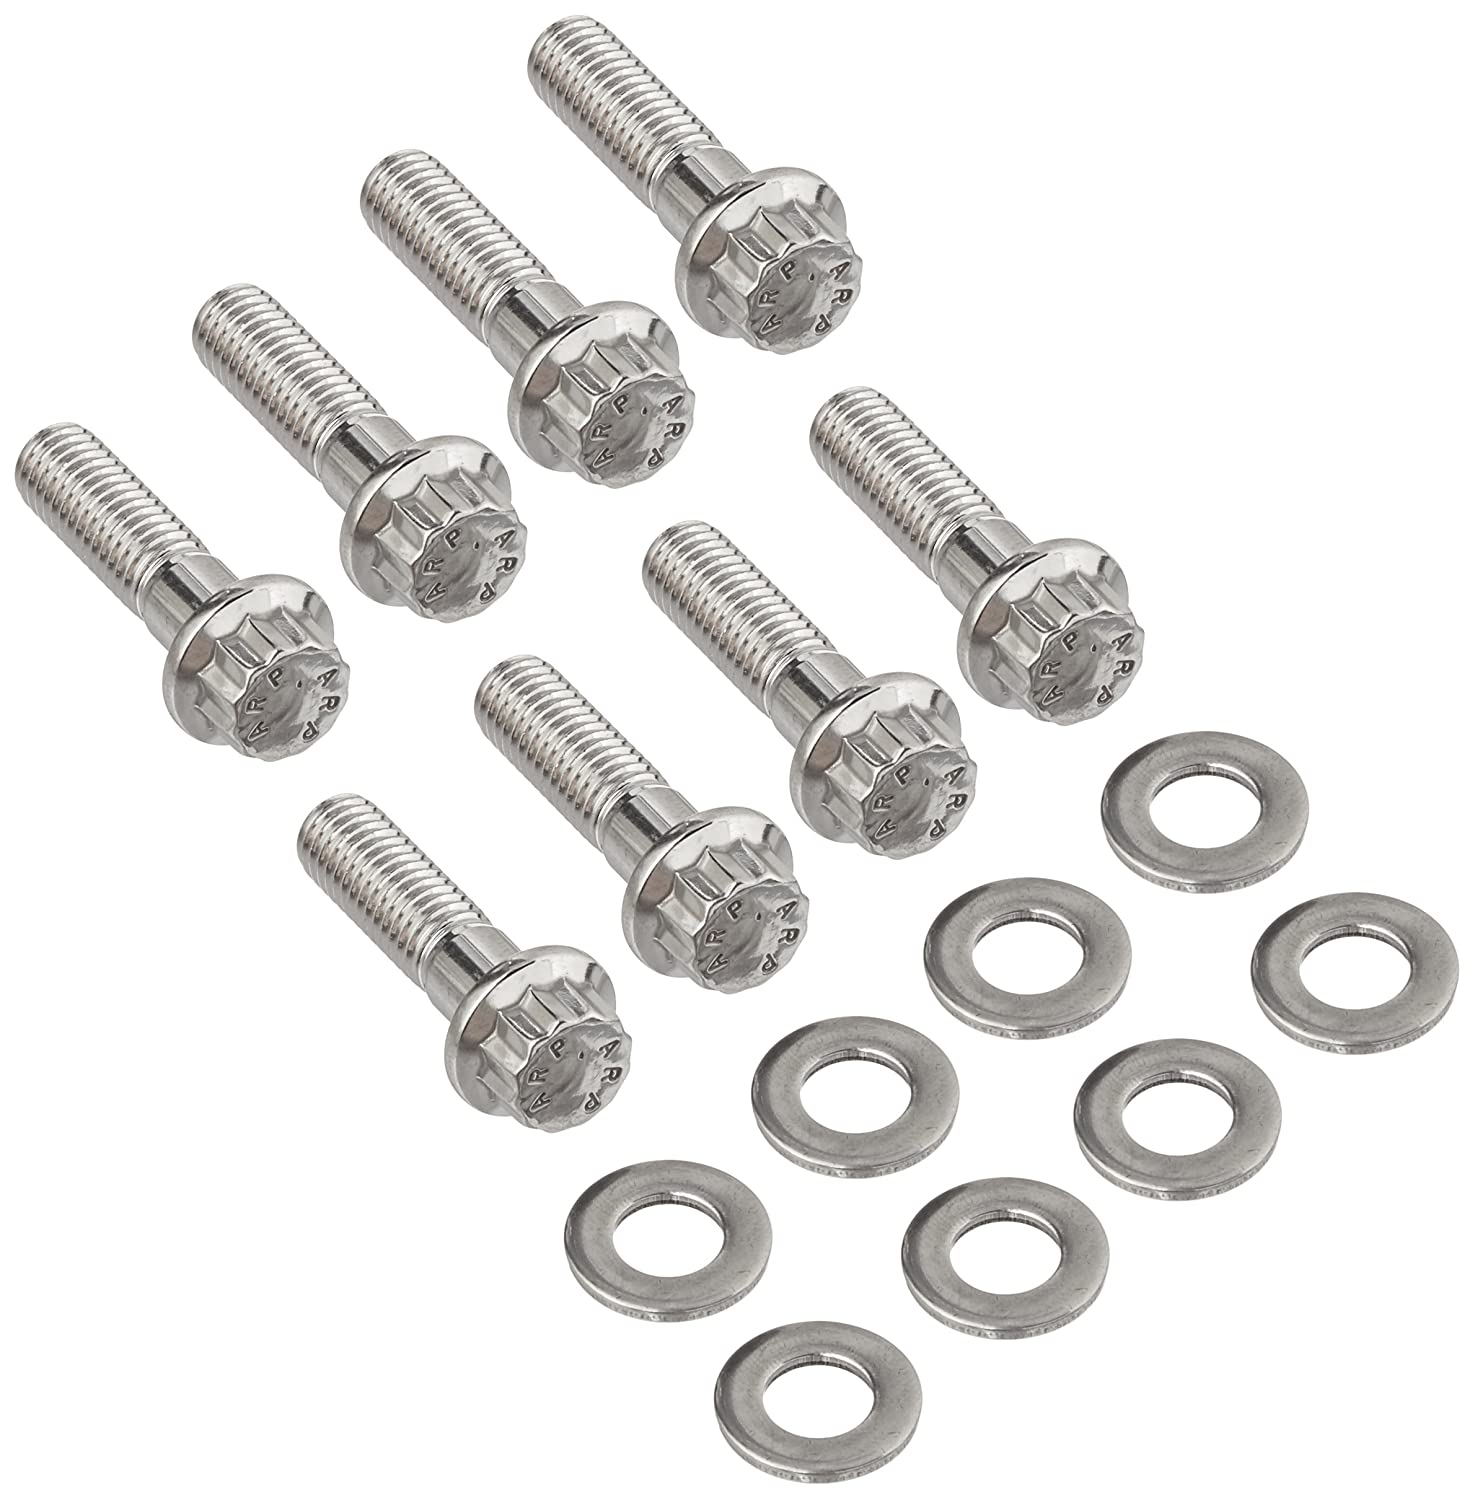 ARP 434-1502 12-Point Stainless Steel Timing Cover Bolt Kit for Chevy LS1/LS2